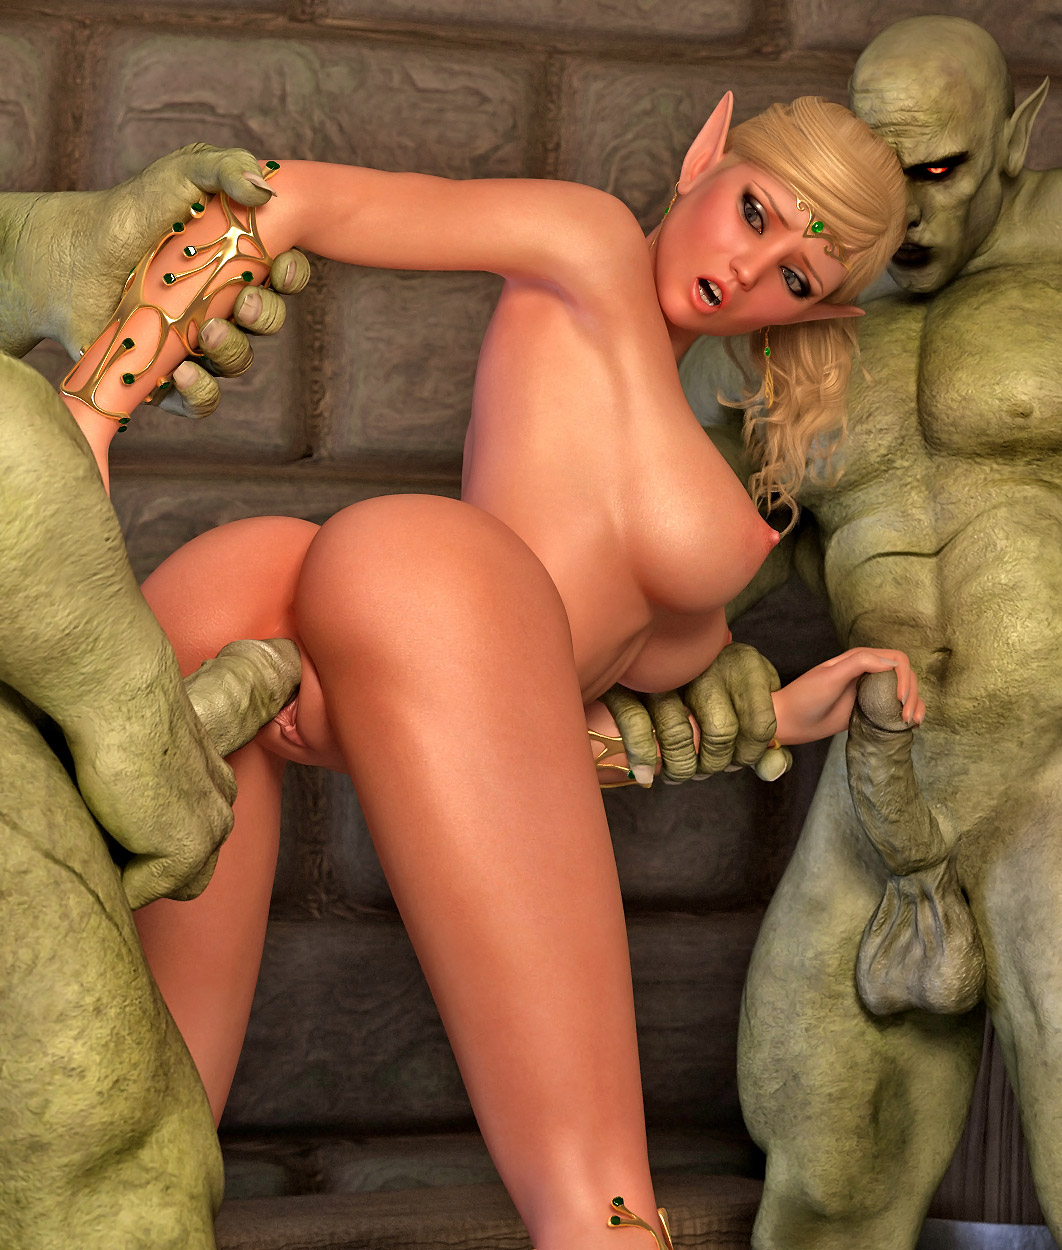 Free download monster porn 3gp videos fucking tube